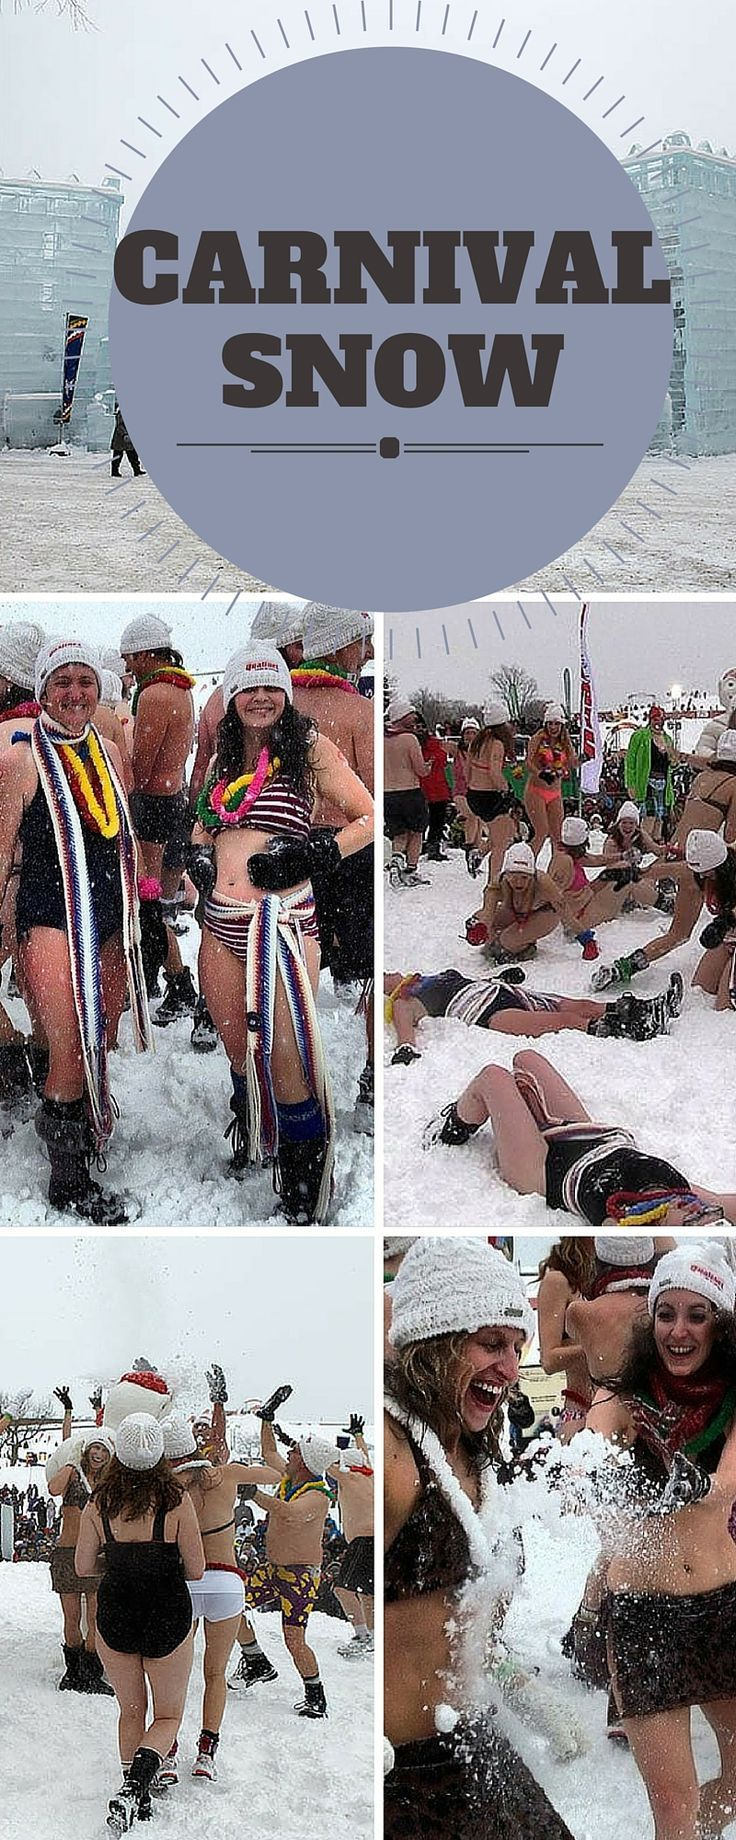 This is the scene at the Quebec Winter Carnival in Quebec, Canada.